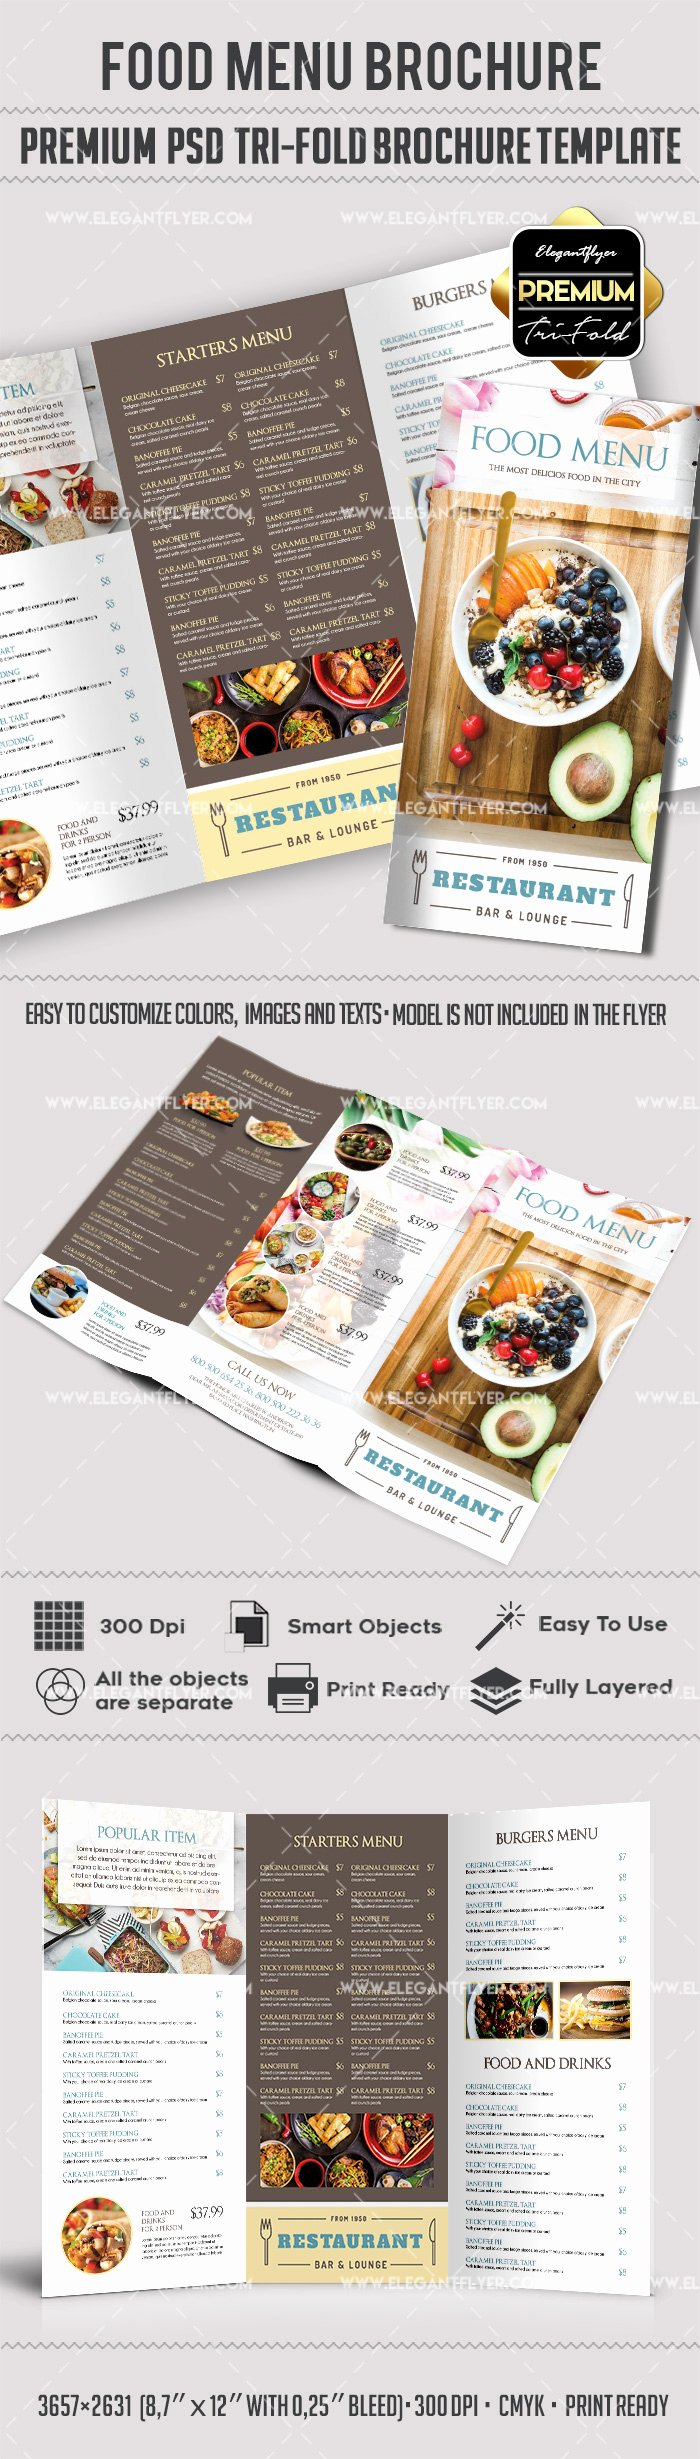 Tri Fold Menu Template Elegant Food Menu – Premium Tri Fold Psd Brochure Template – by